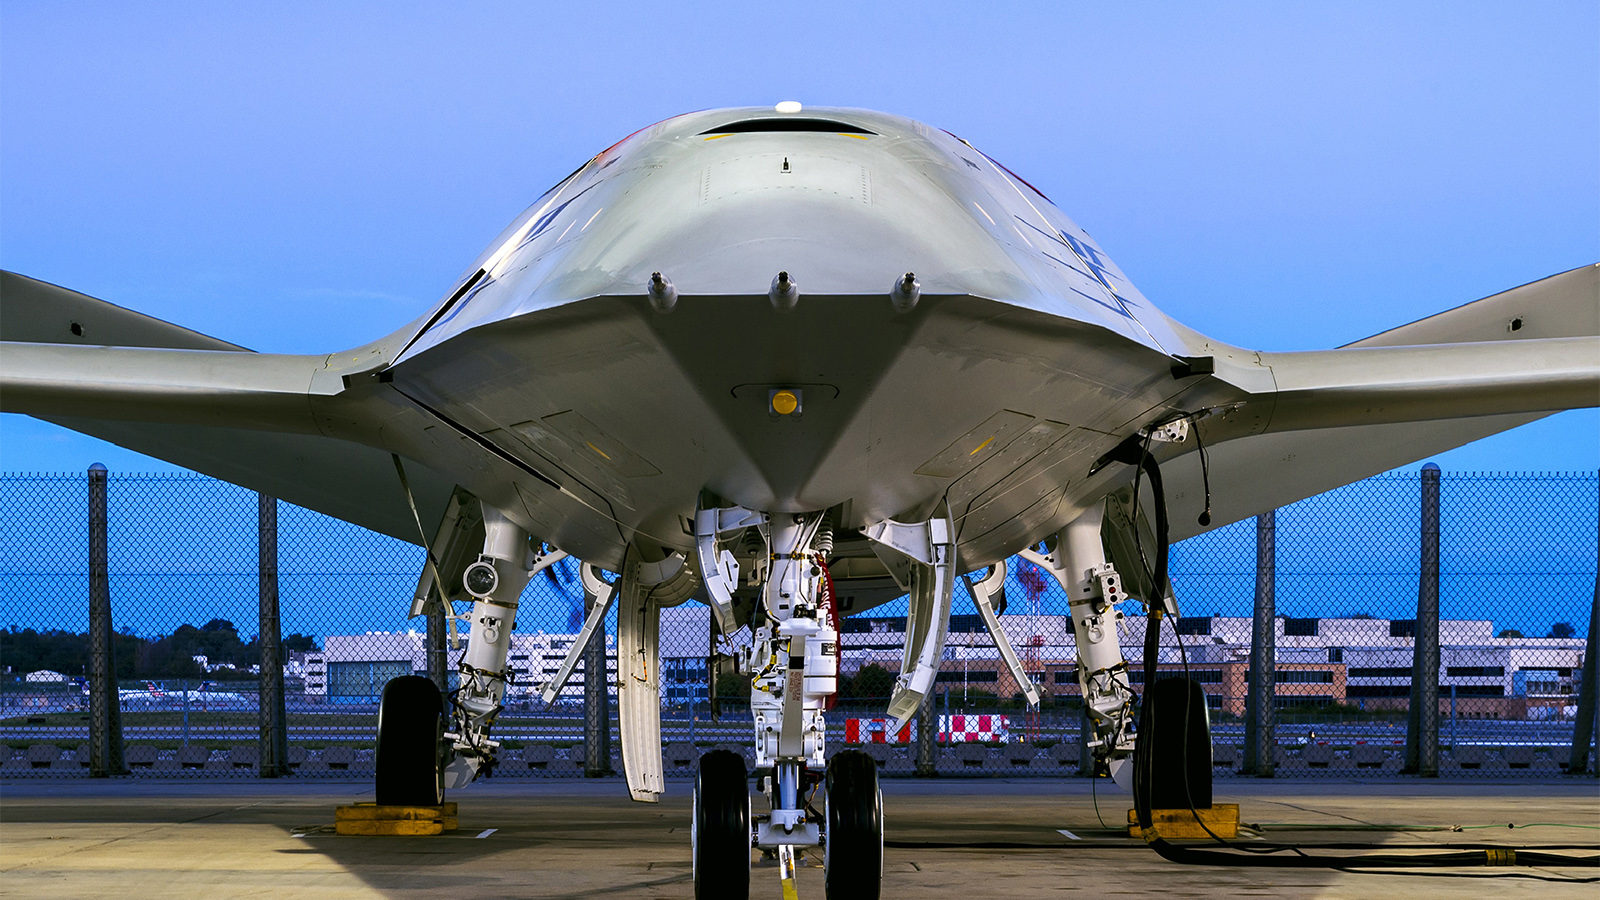 The Vehicle Management Control System will control all flight surfaces and perform overall vehicle management duties for the MQ-25 unmanned aerial vehicle.